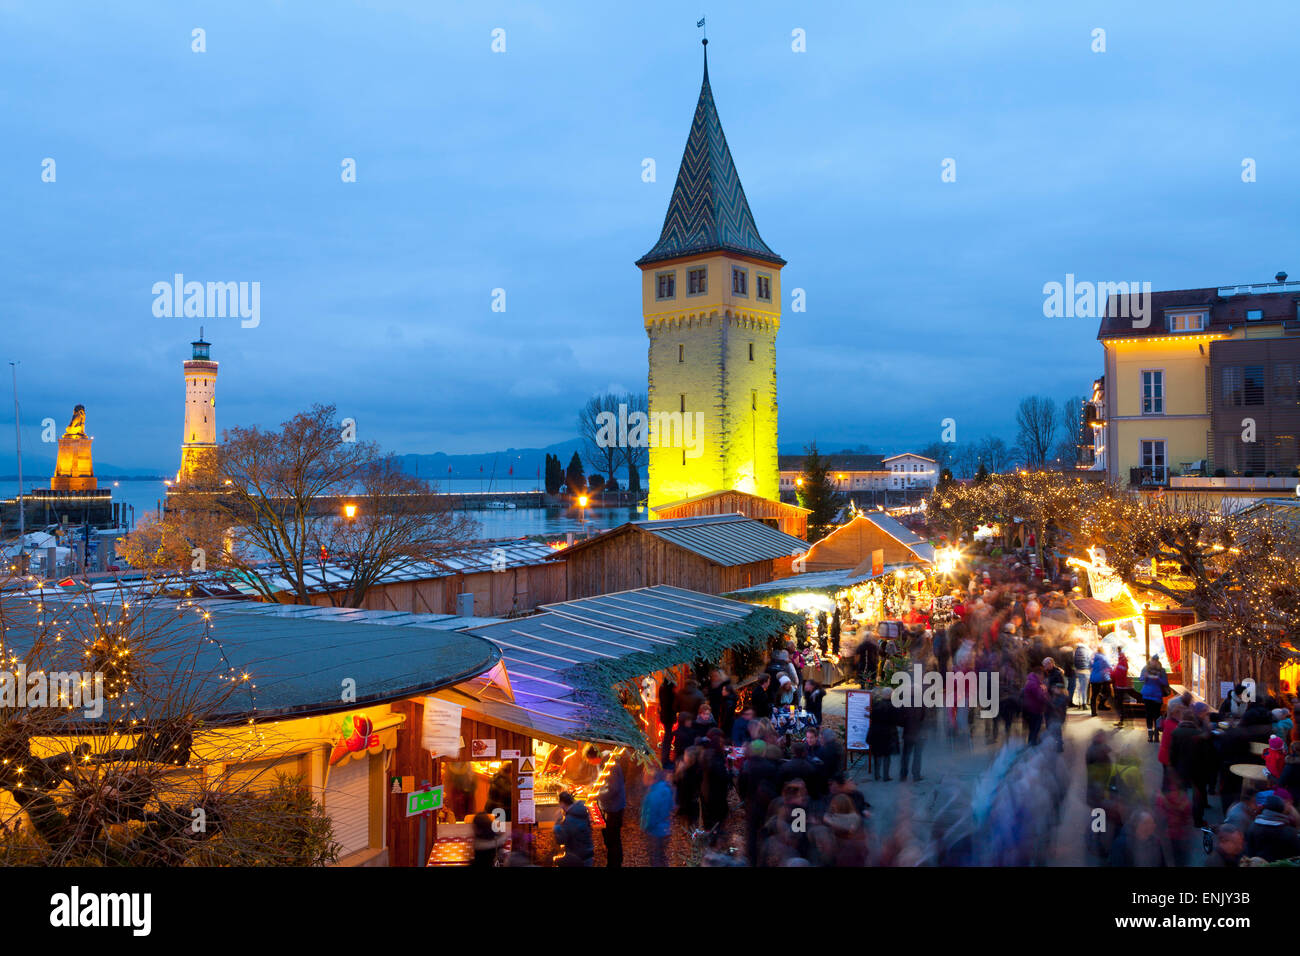 Christmas Market along Lindau's Historic Port, Lindau im Bodensee, Germany, Europe - Stock Image